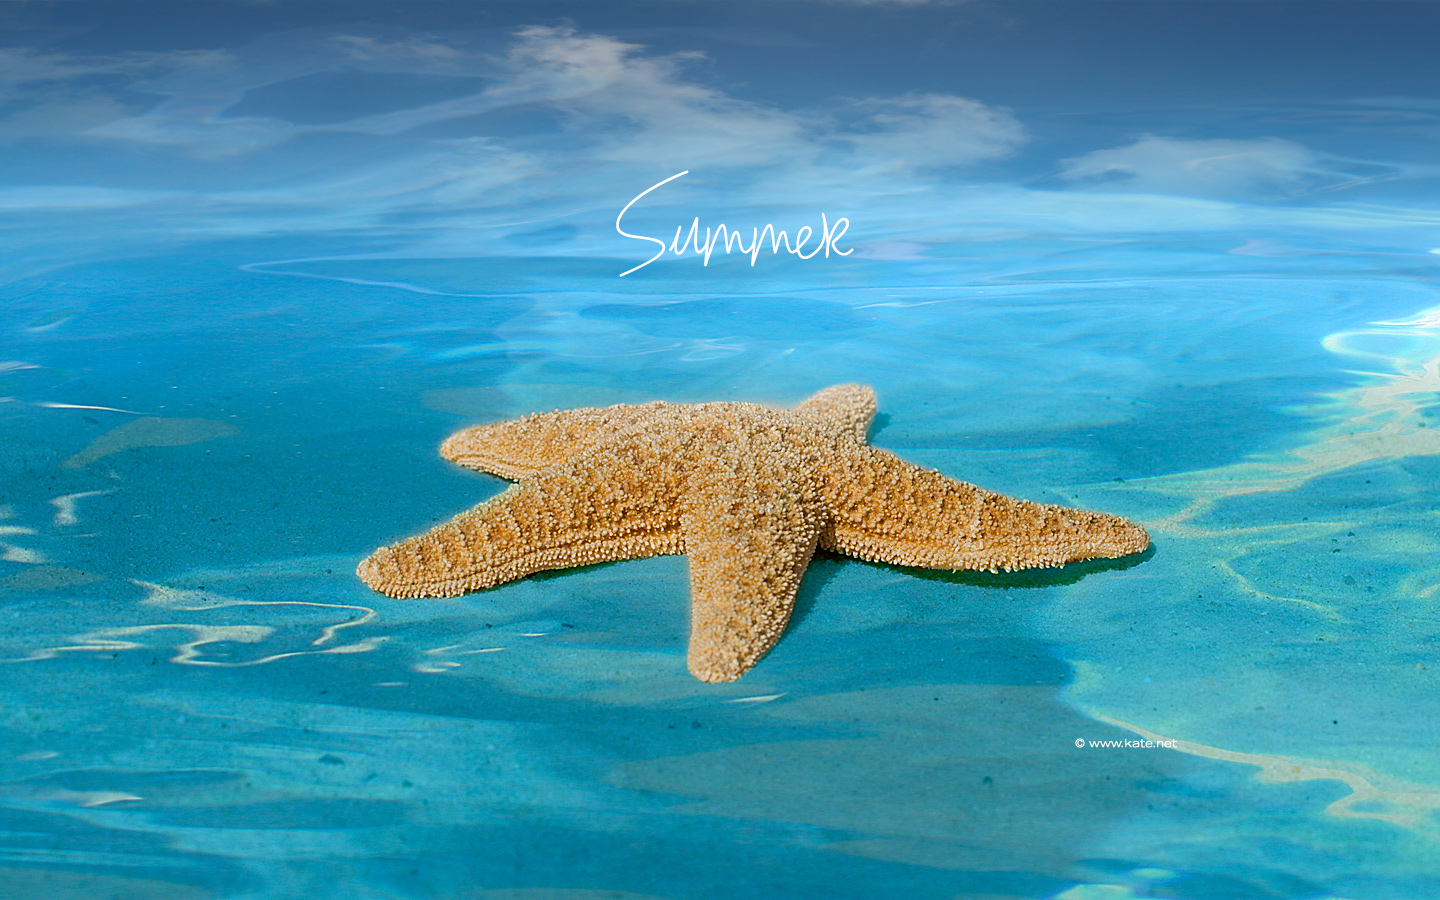 Free Summer Desktop Screensavers post under Summer Wallpaper. We have many seasonal summer wallpaper free wallpaper hd. Free Summer Desktop Screensavers was ...